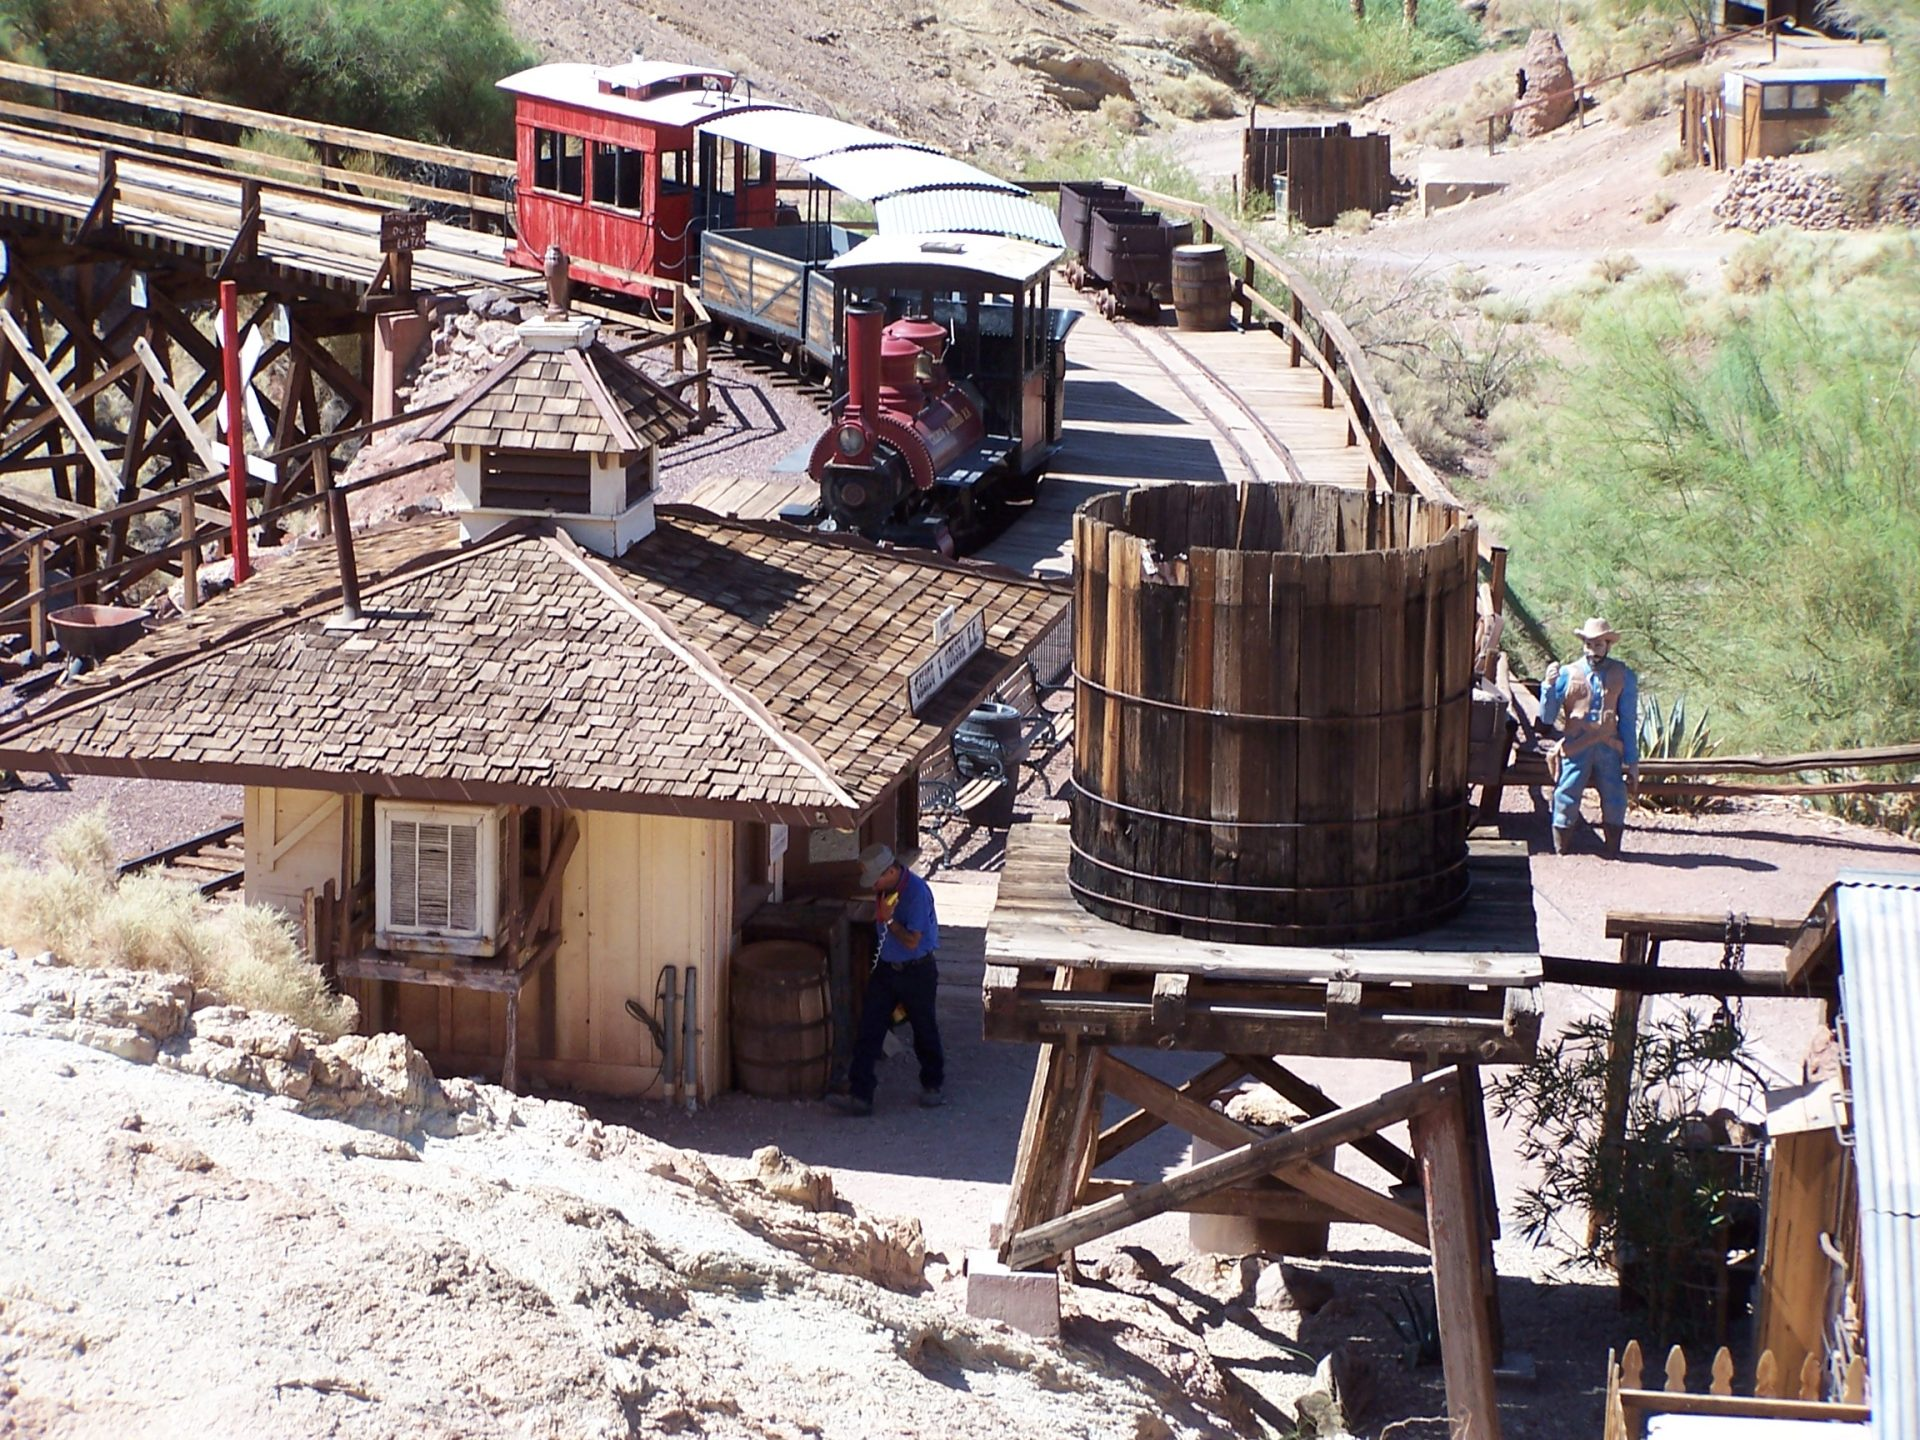 Train at Calico